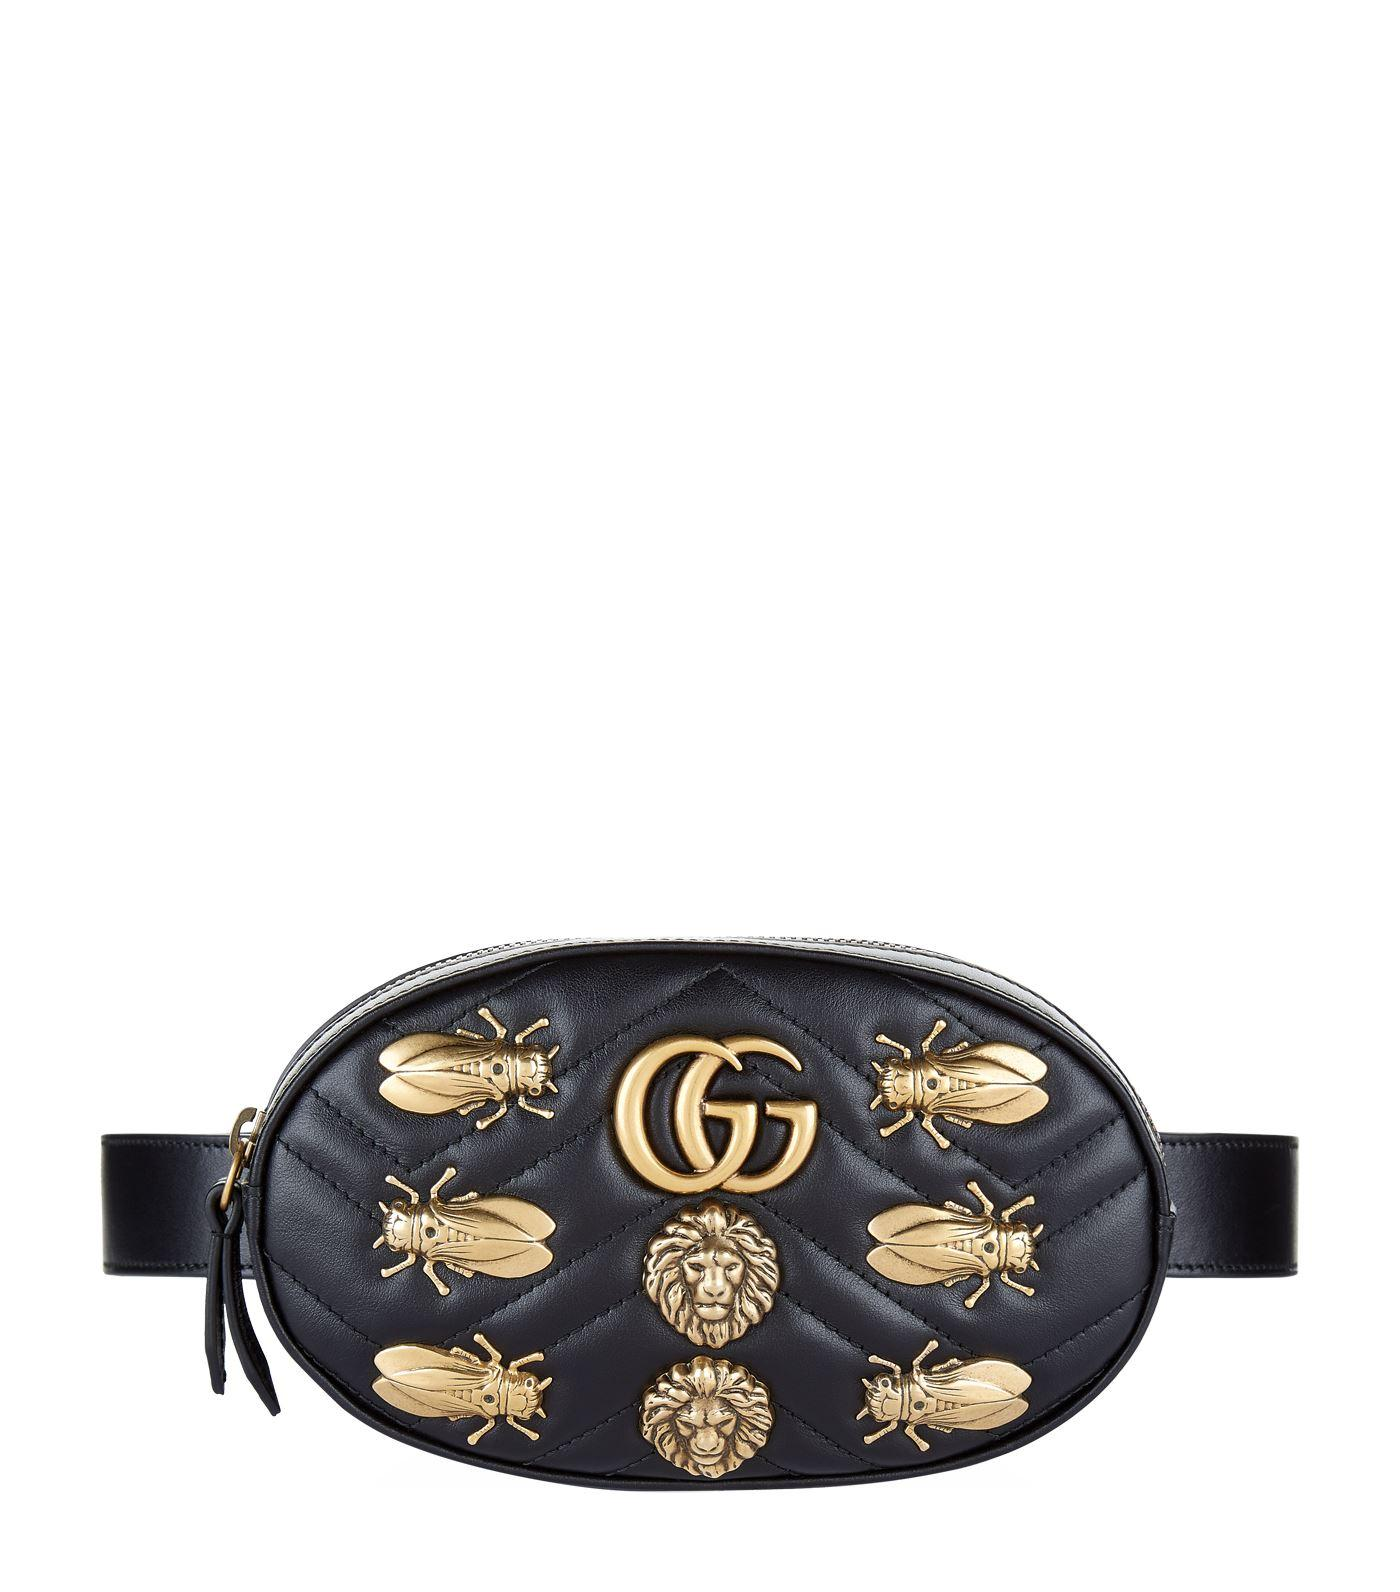 Gucci Medium Gg Marmont Belt Pack W/ AppliquÉs In Black